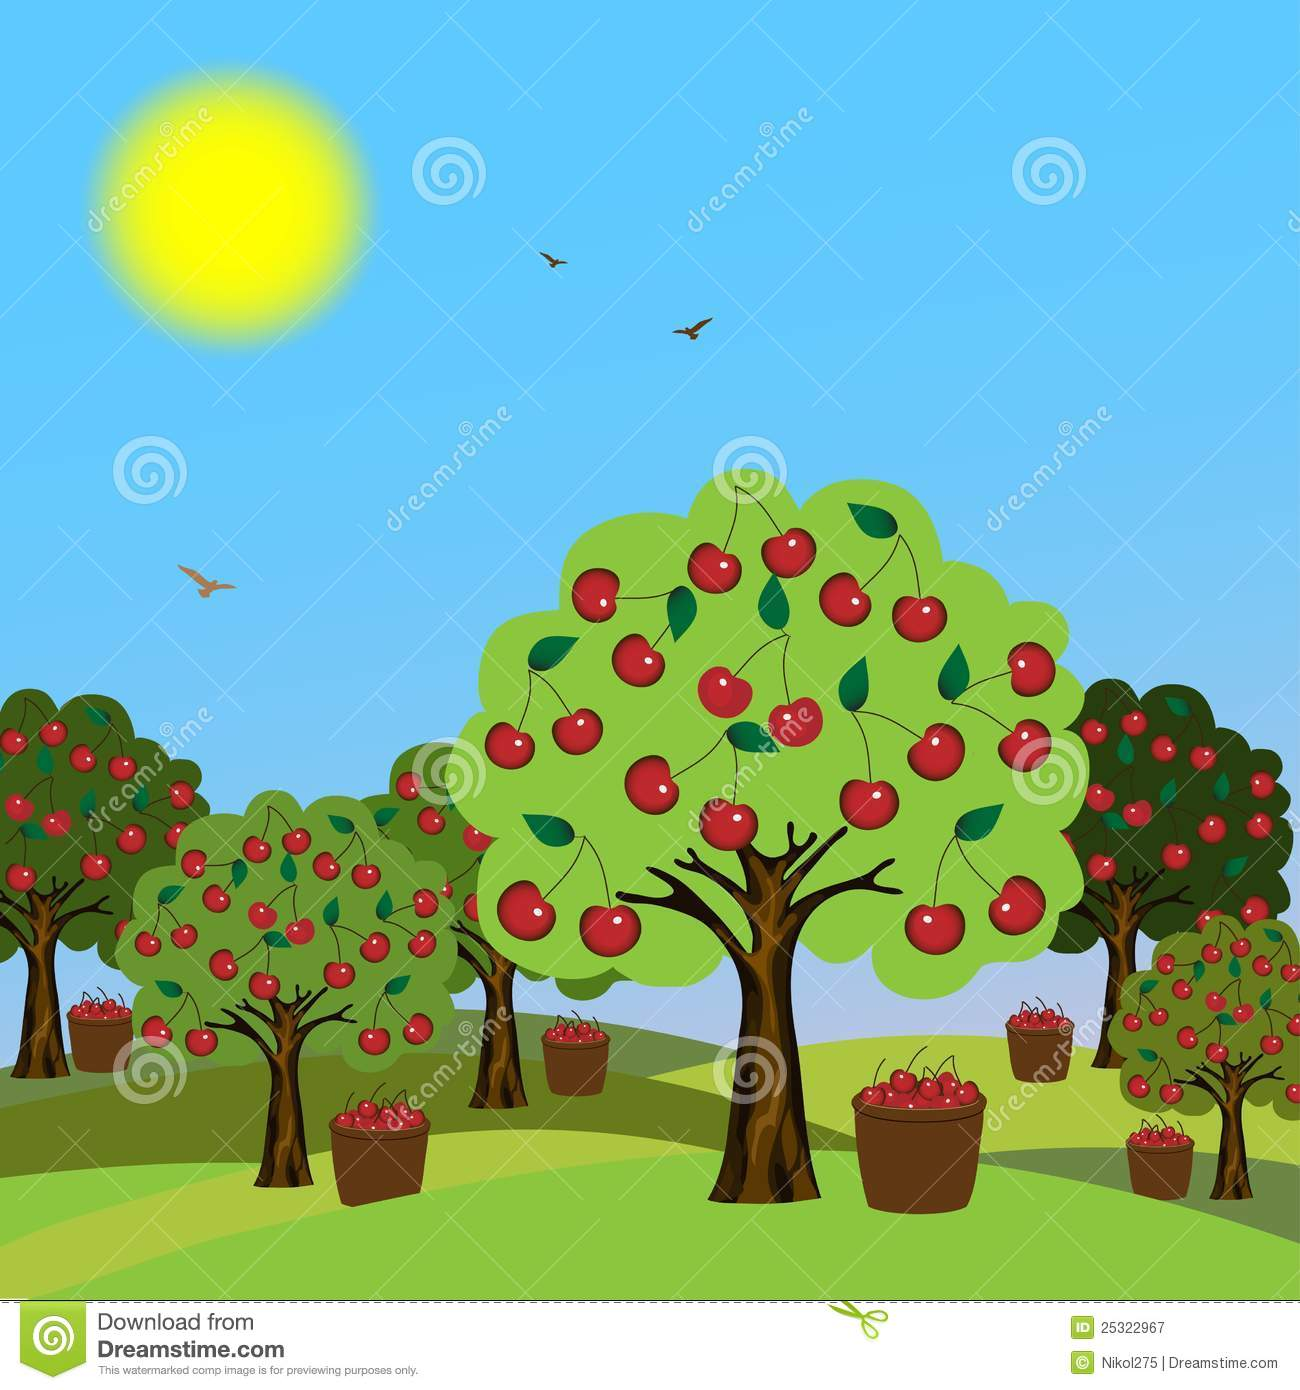 Cherry orchard stock vector. Image of icon, cherry, leaf ...